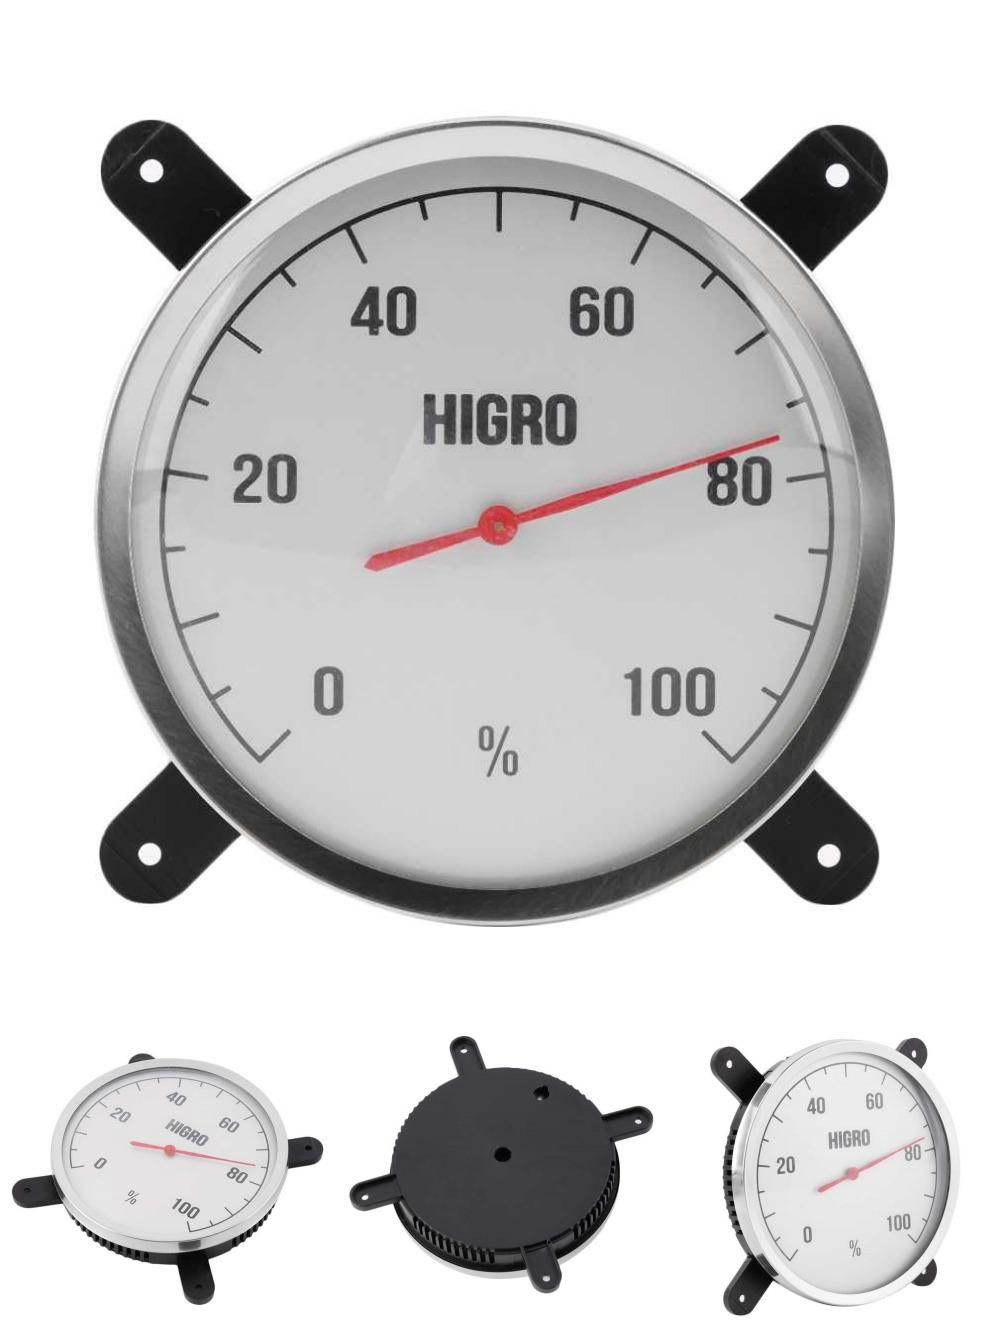 Visit To Buy New Hightemperature Measuring Stainless Steel Indoor Outdoor Thermometer Hygrometer Sauna Bath L Room Thermometer Sauna Room Outdoor Thermometer